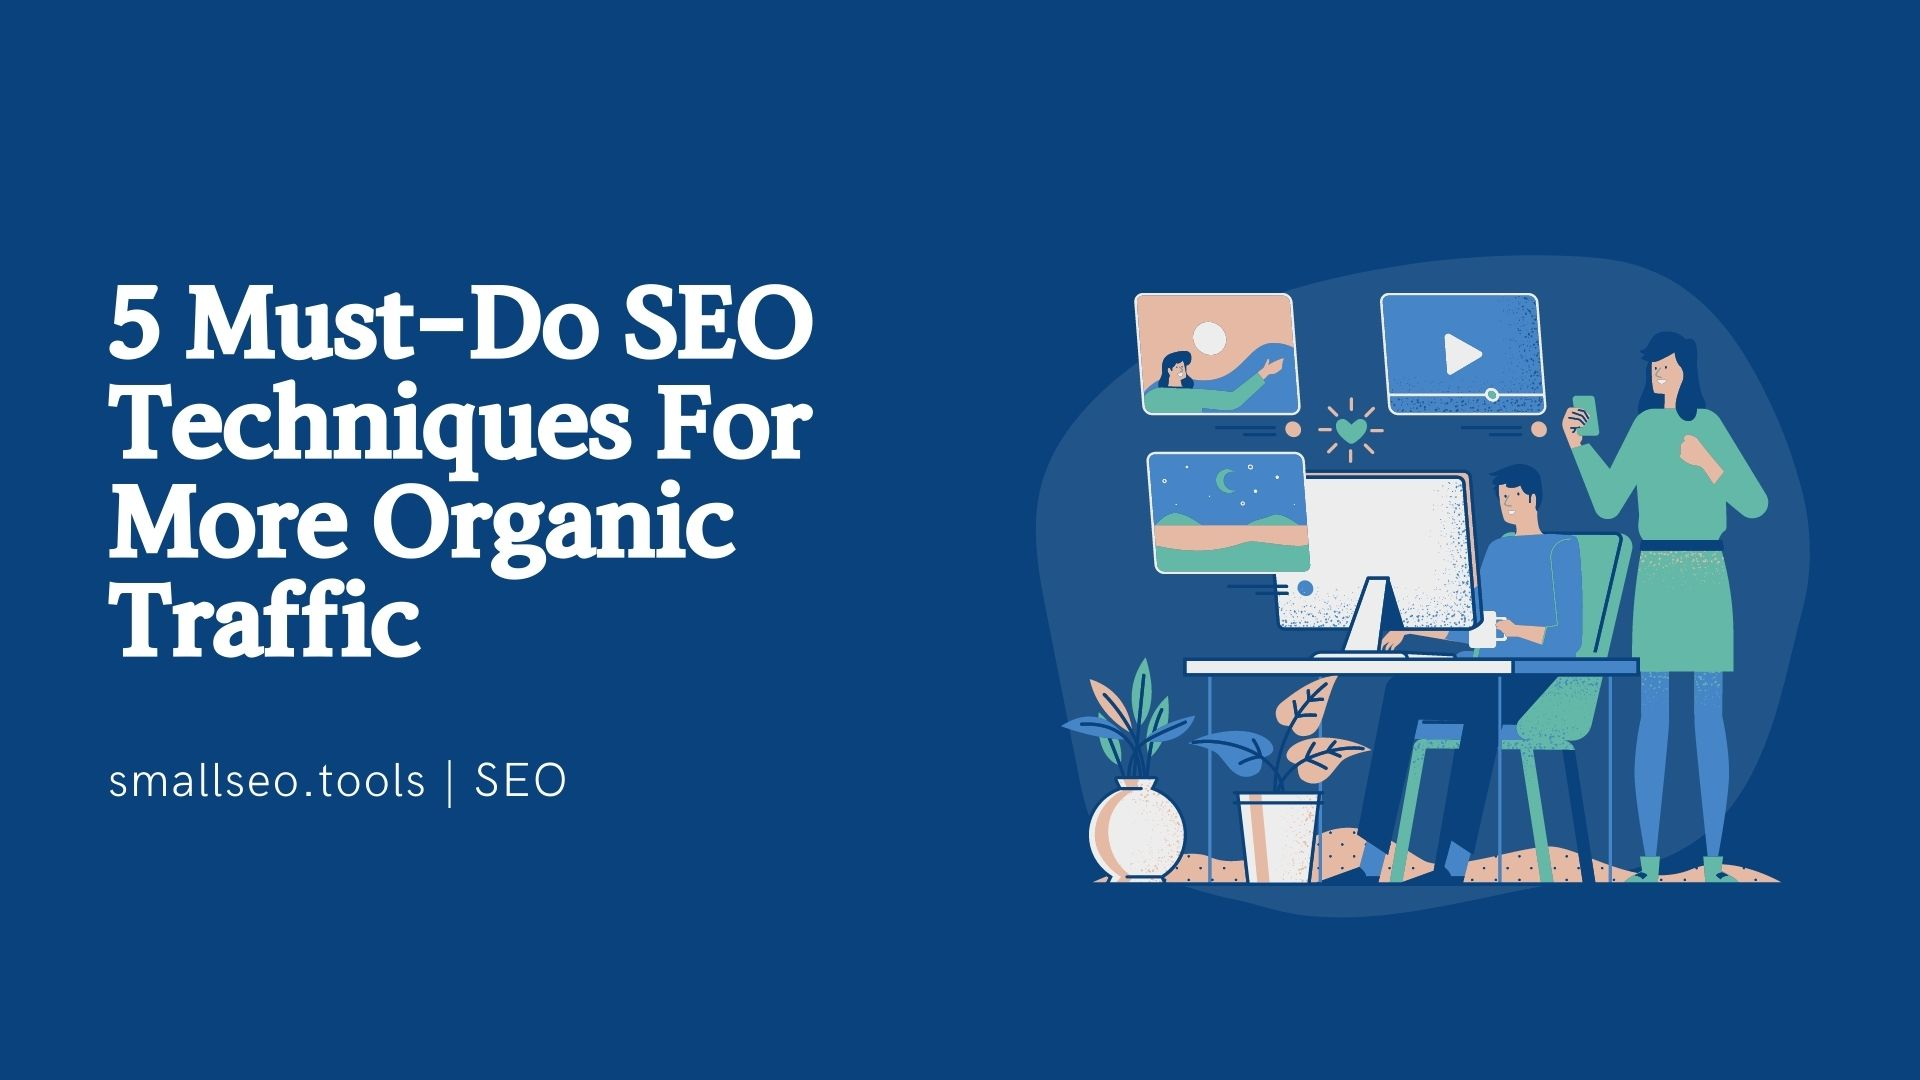 5 Must-Do SEO Techniques For More Organic Traffic